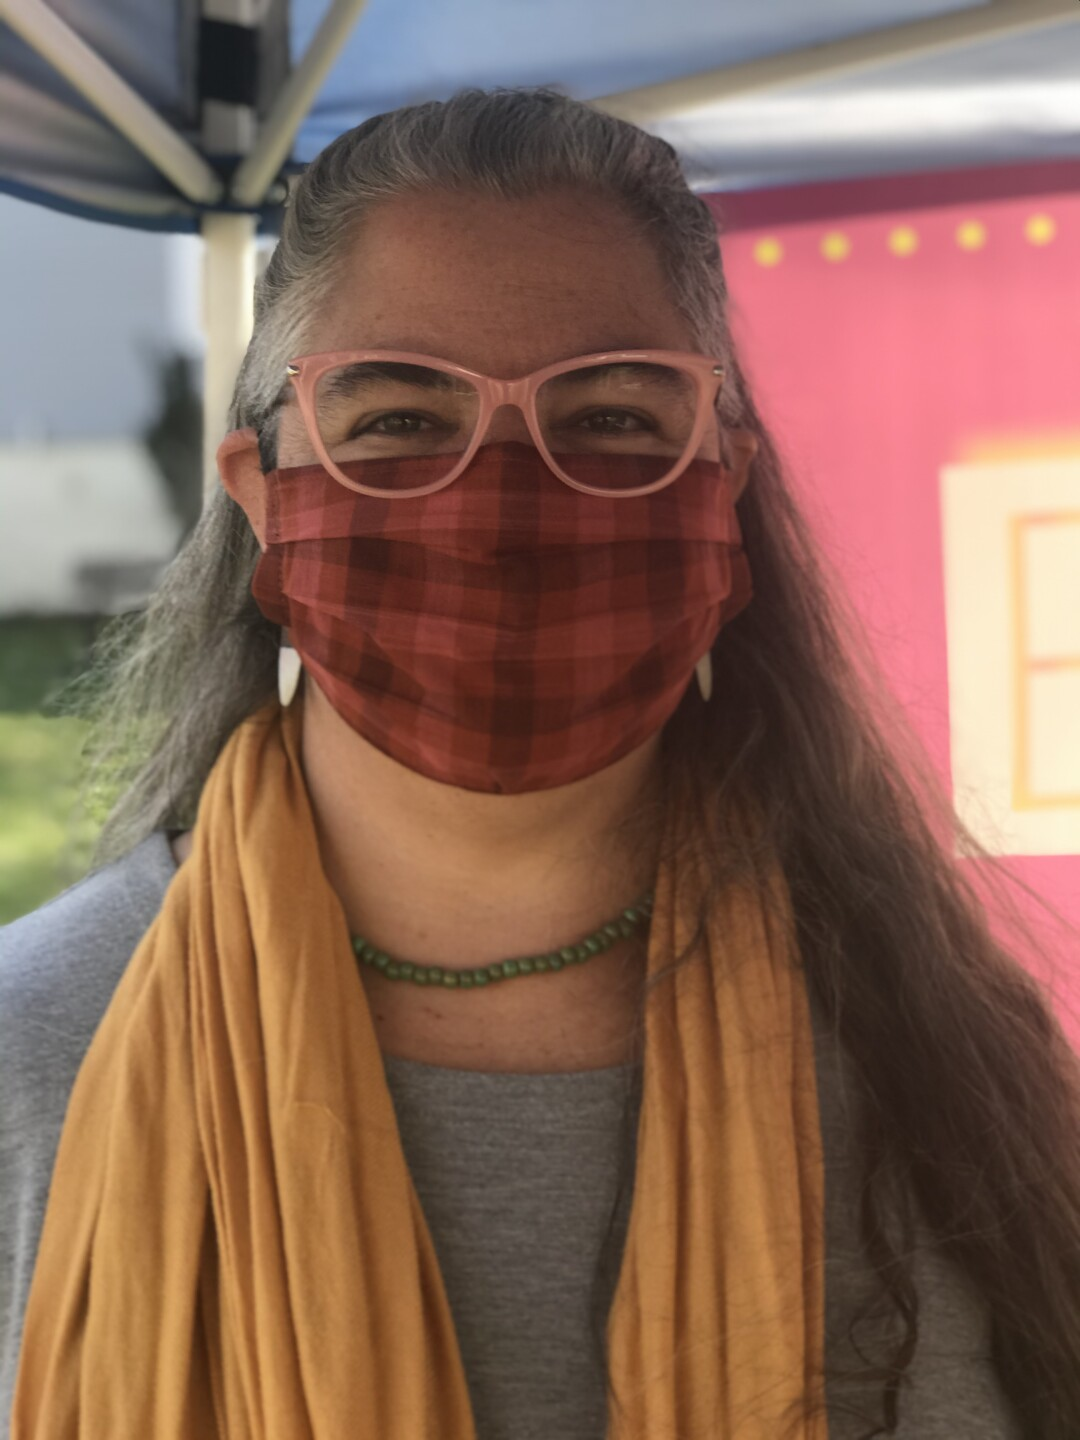 Jules Maloney said she normally sets up 'Empathy Booths' at community events and farmers markets. She hasn't been able to do that this year because of the coronavirus pandemic.